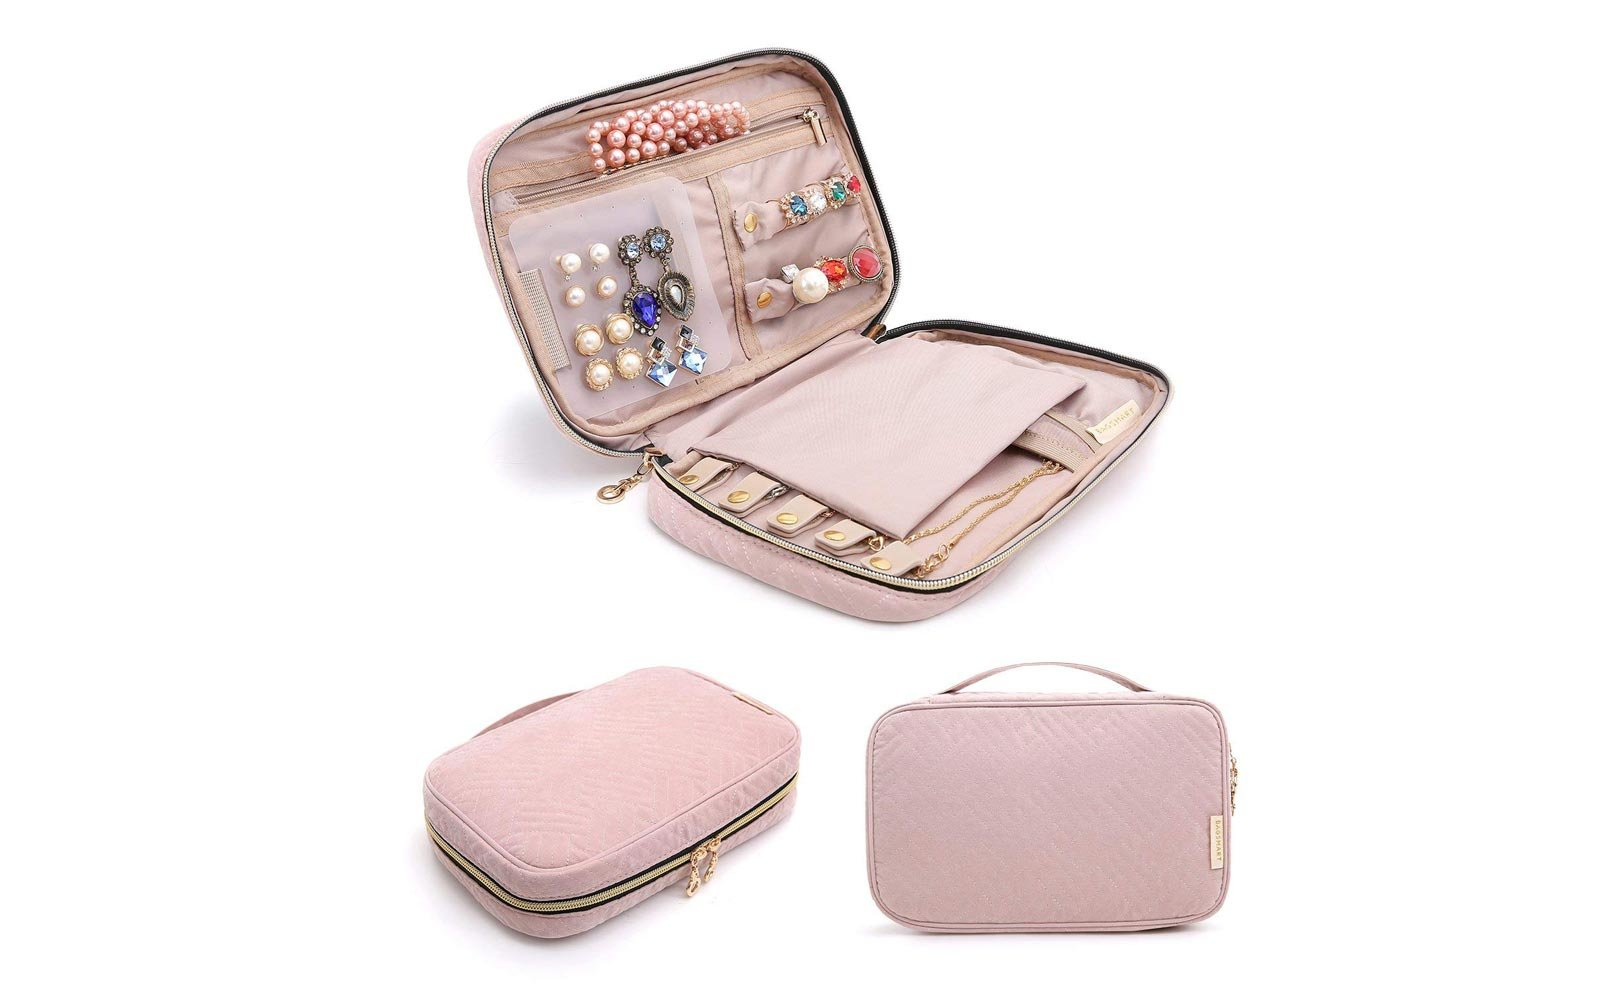 14 Travel Jewelry Cases for Your Next Trip  c1387675fcbf6